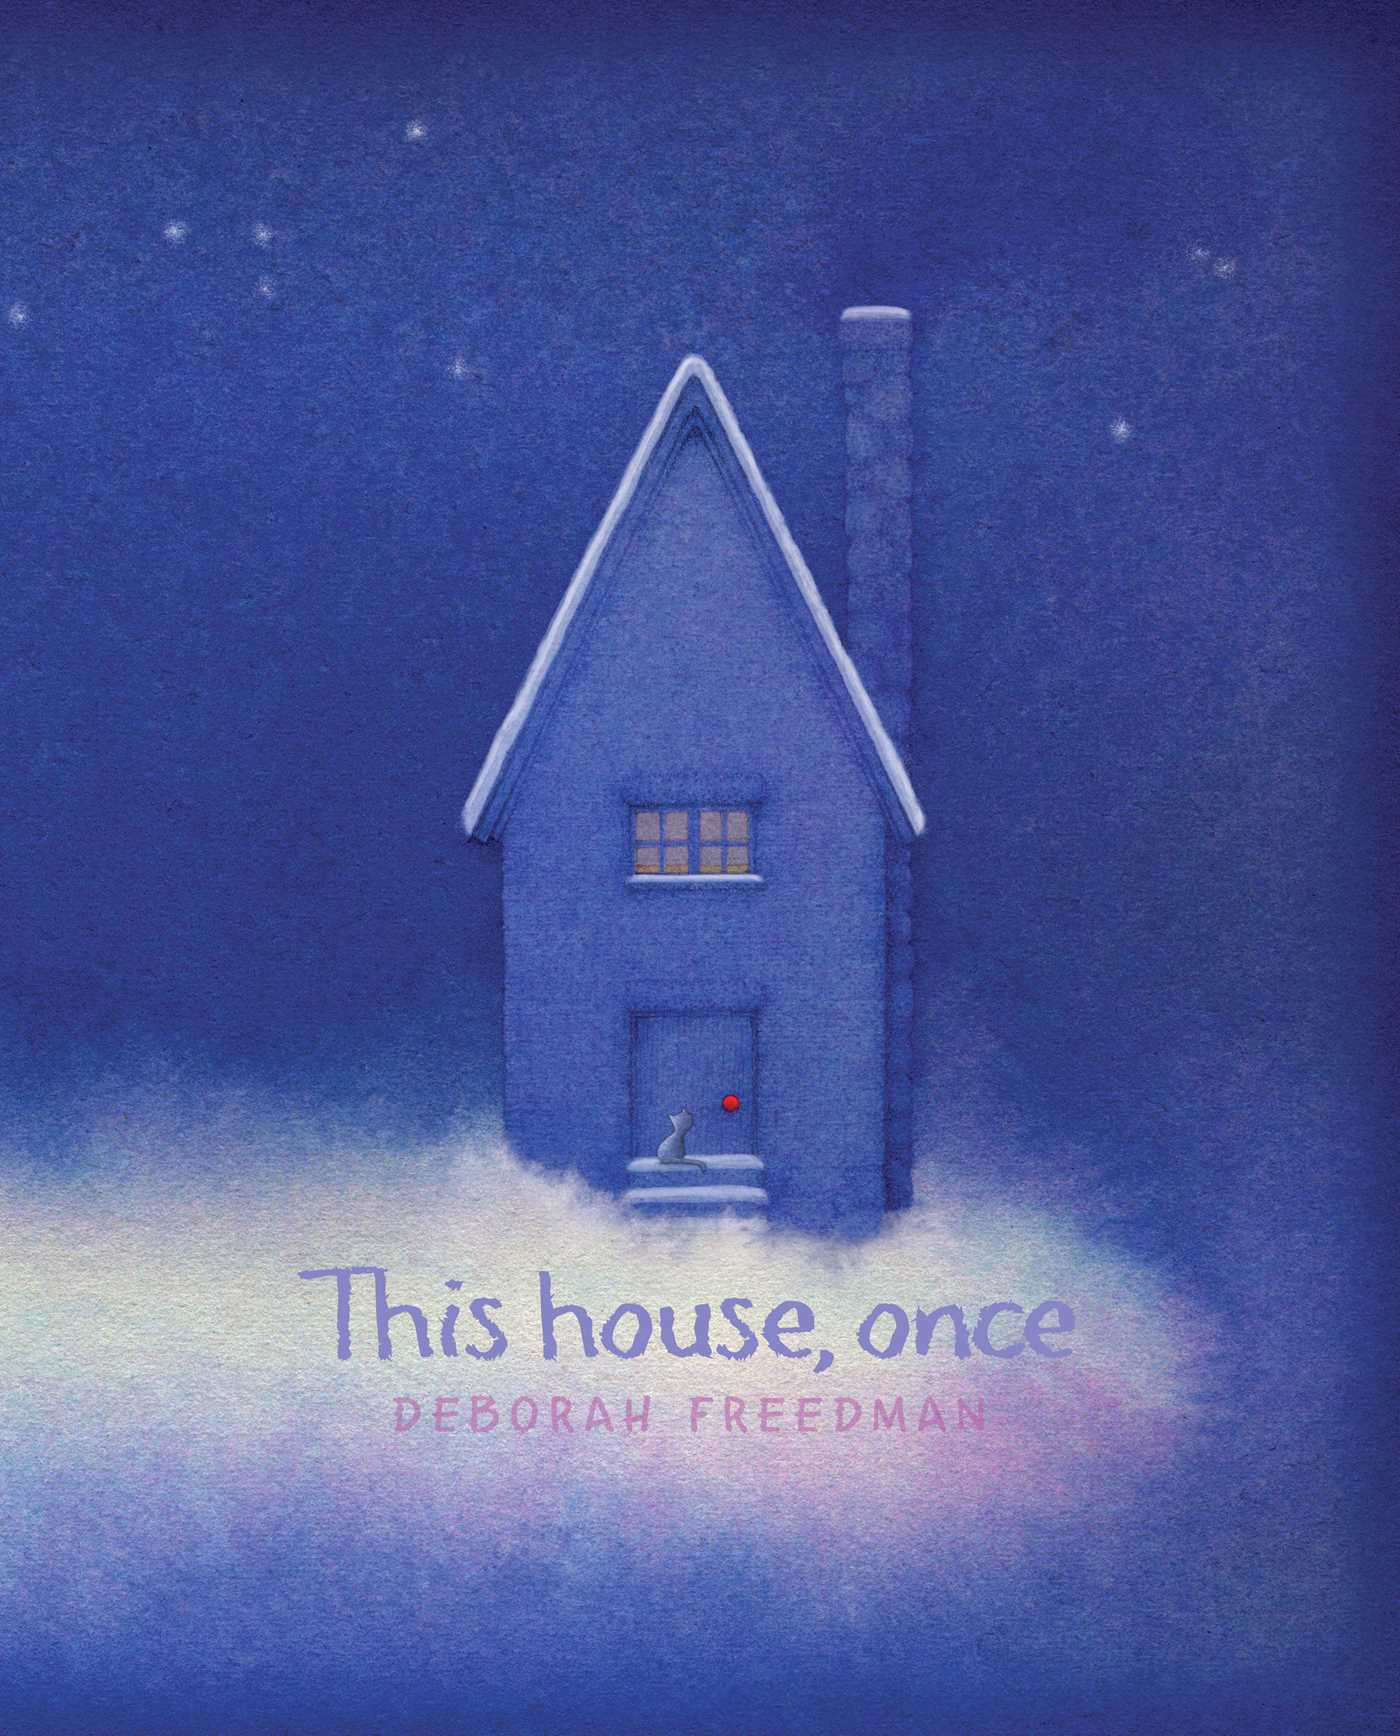 THIS HOUSE, ONCE Song - Song by Emily Arrowabout the book by Deborah Freedman